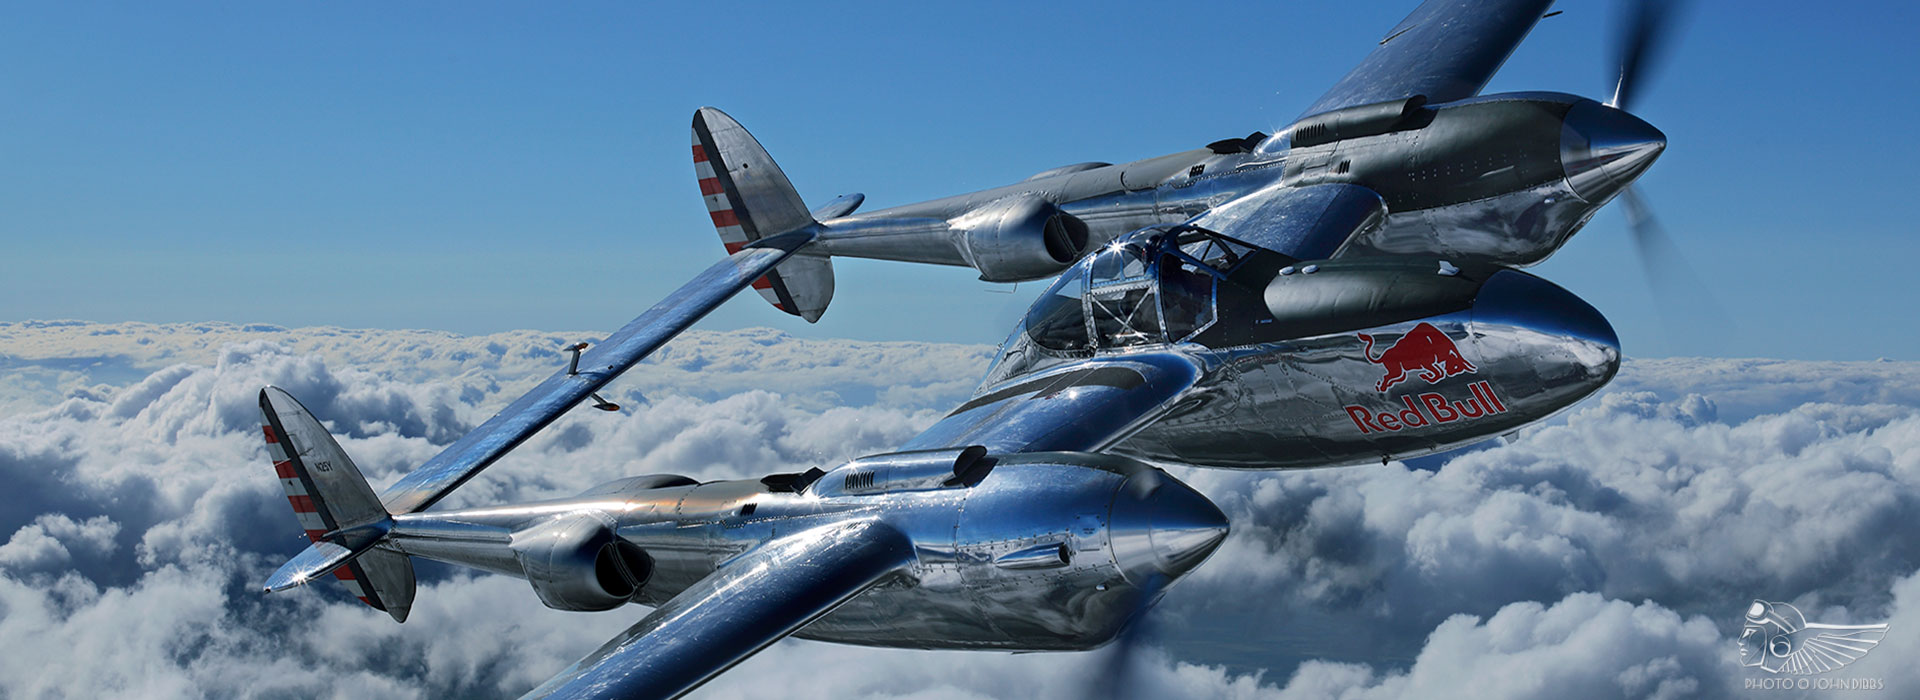 Raimund Riedmann on his love affair with the P-38 Lightning